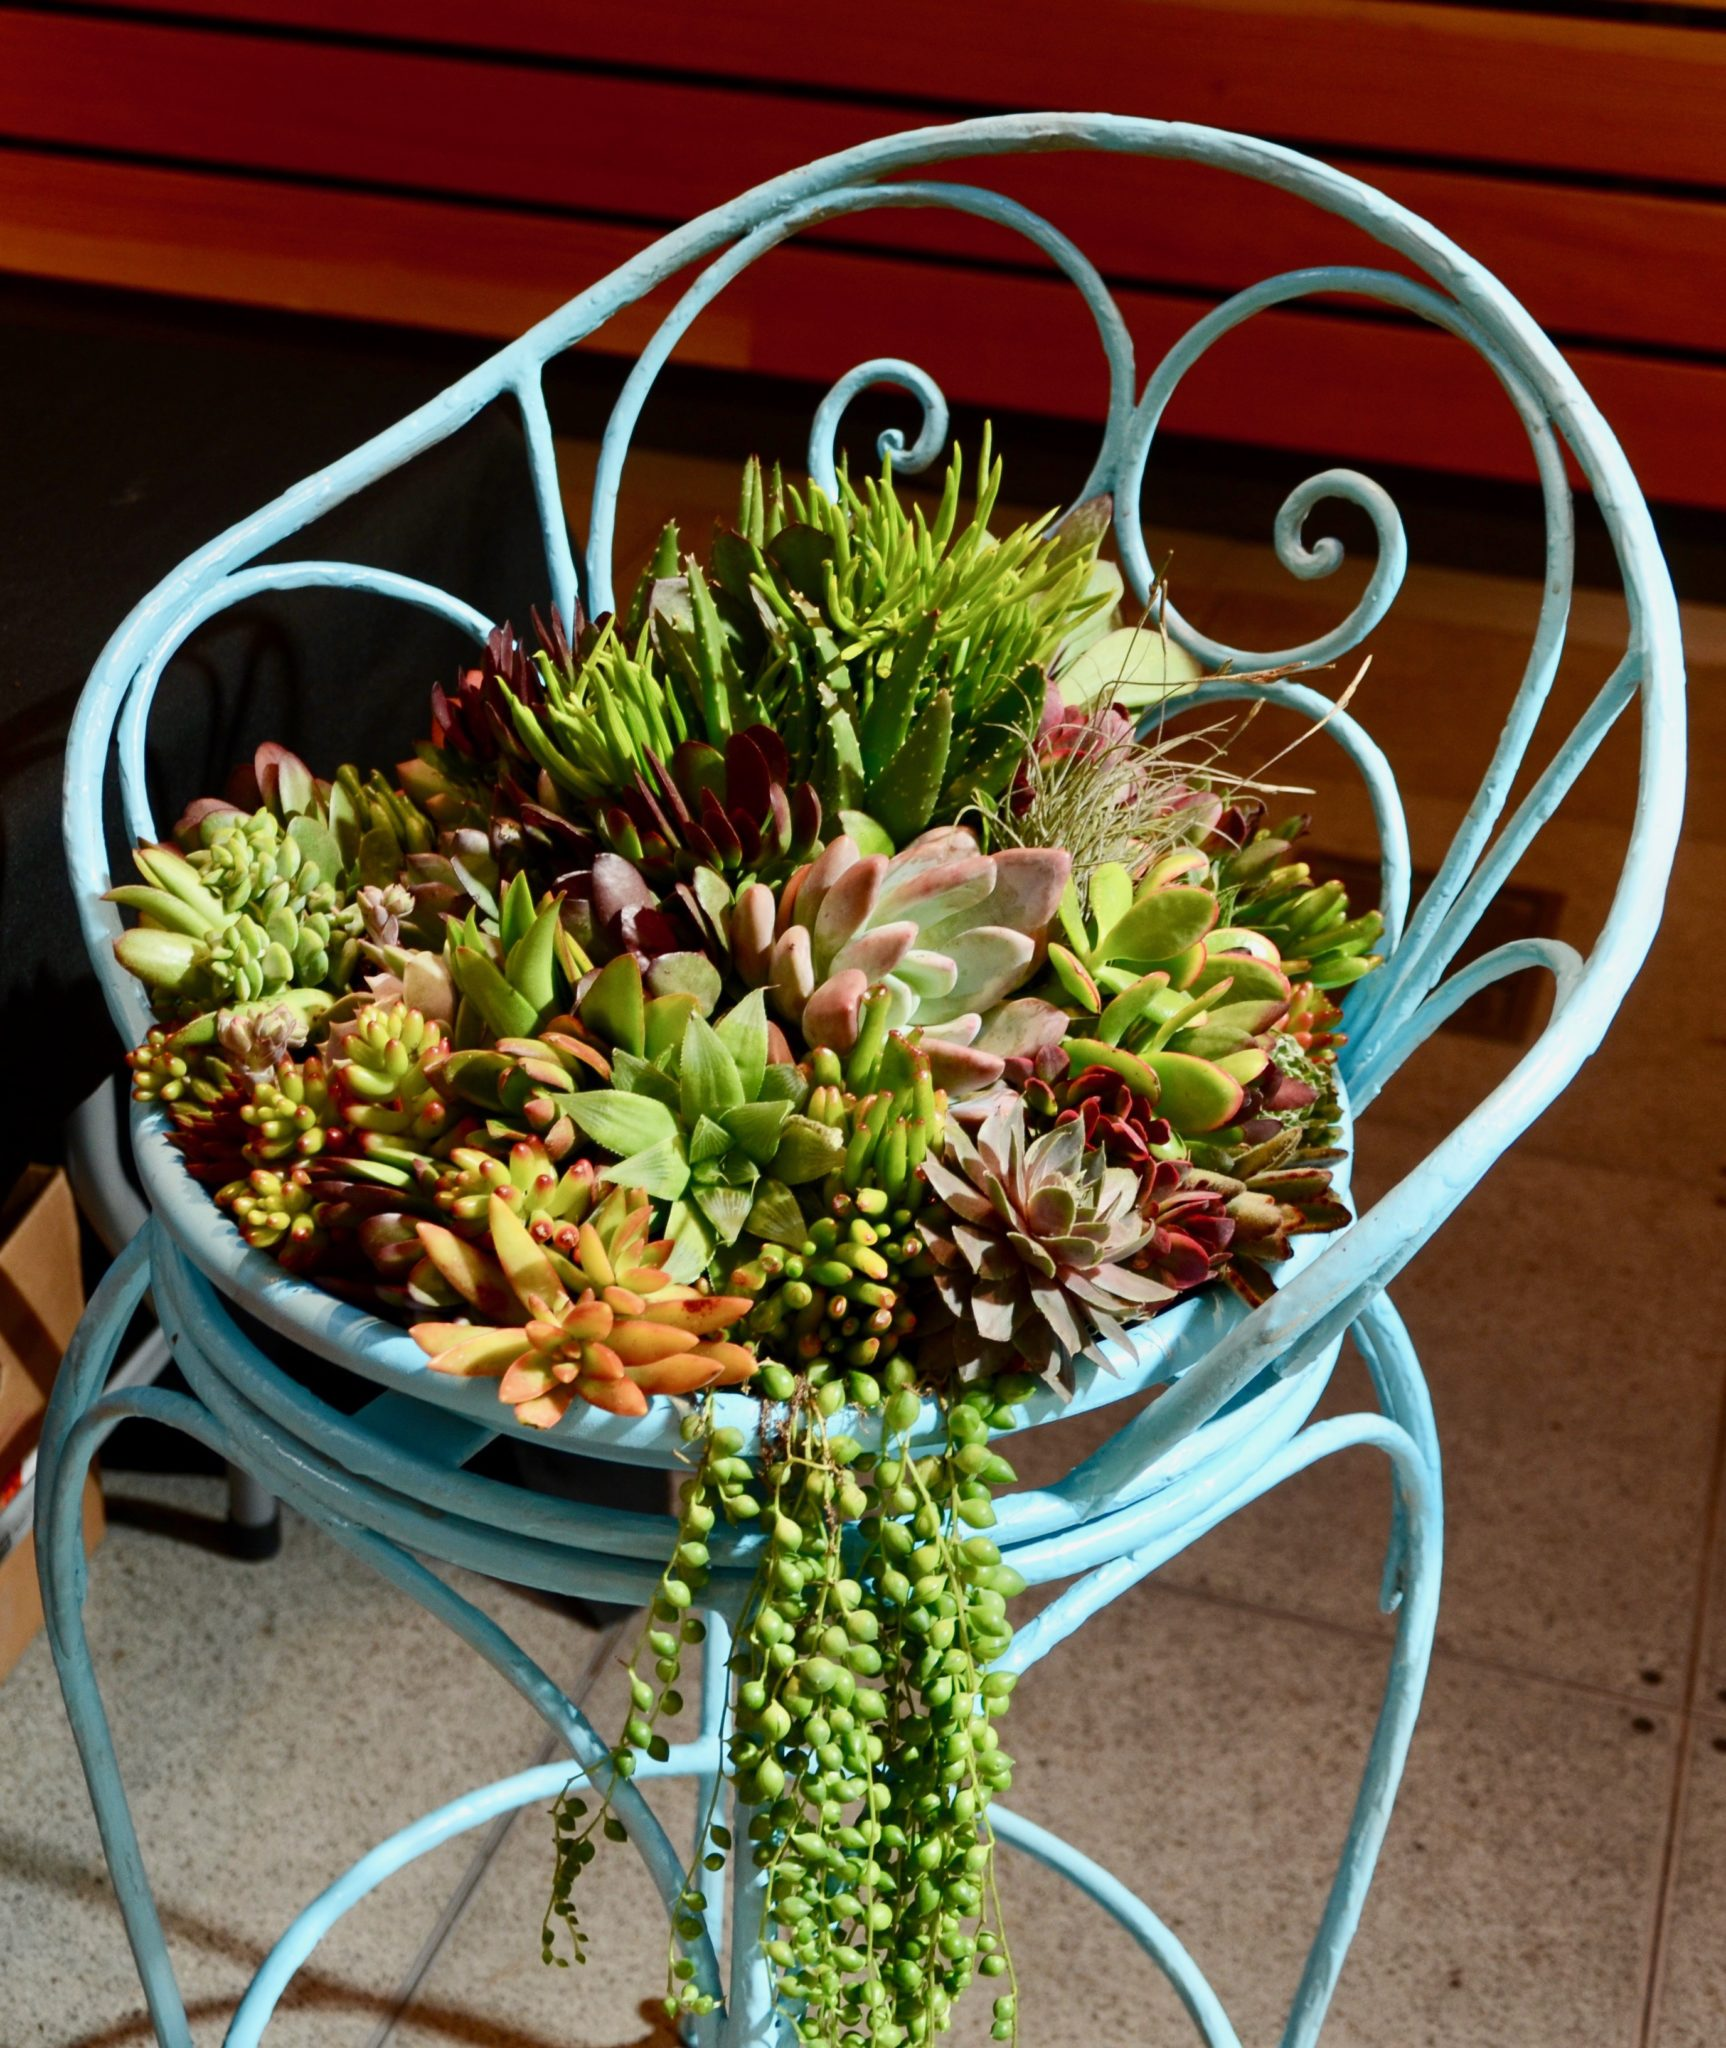 February Member Meeting: Succulents are Simple to Use